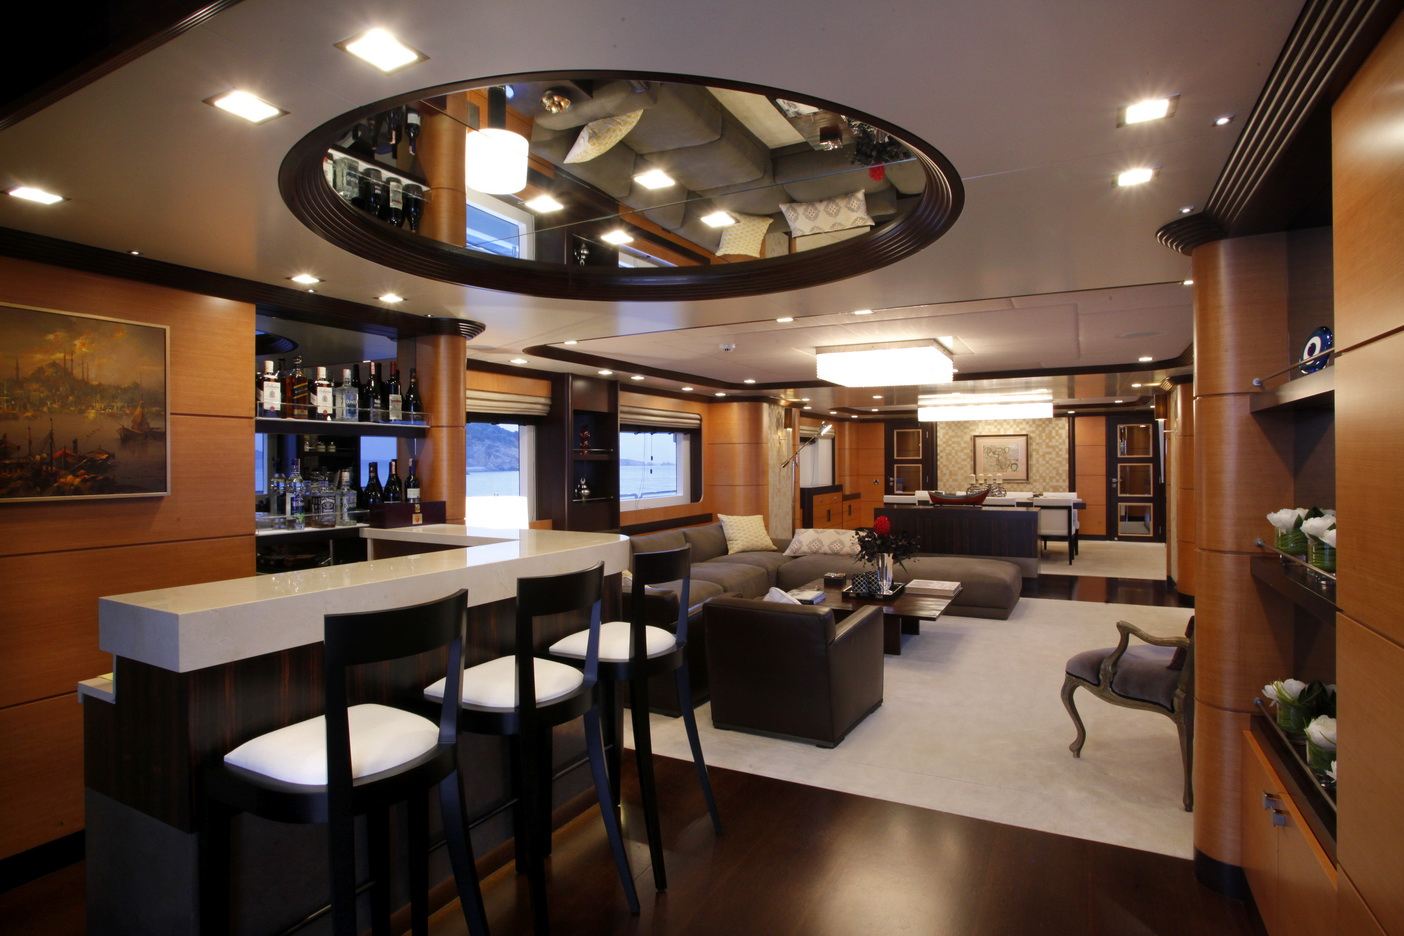 super serenity ii serenity ii salon and bar luxury